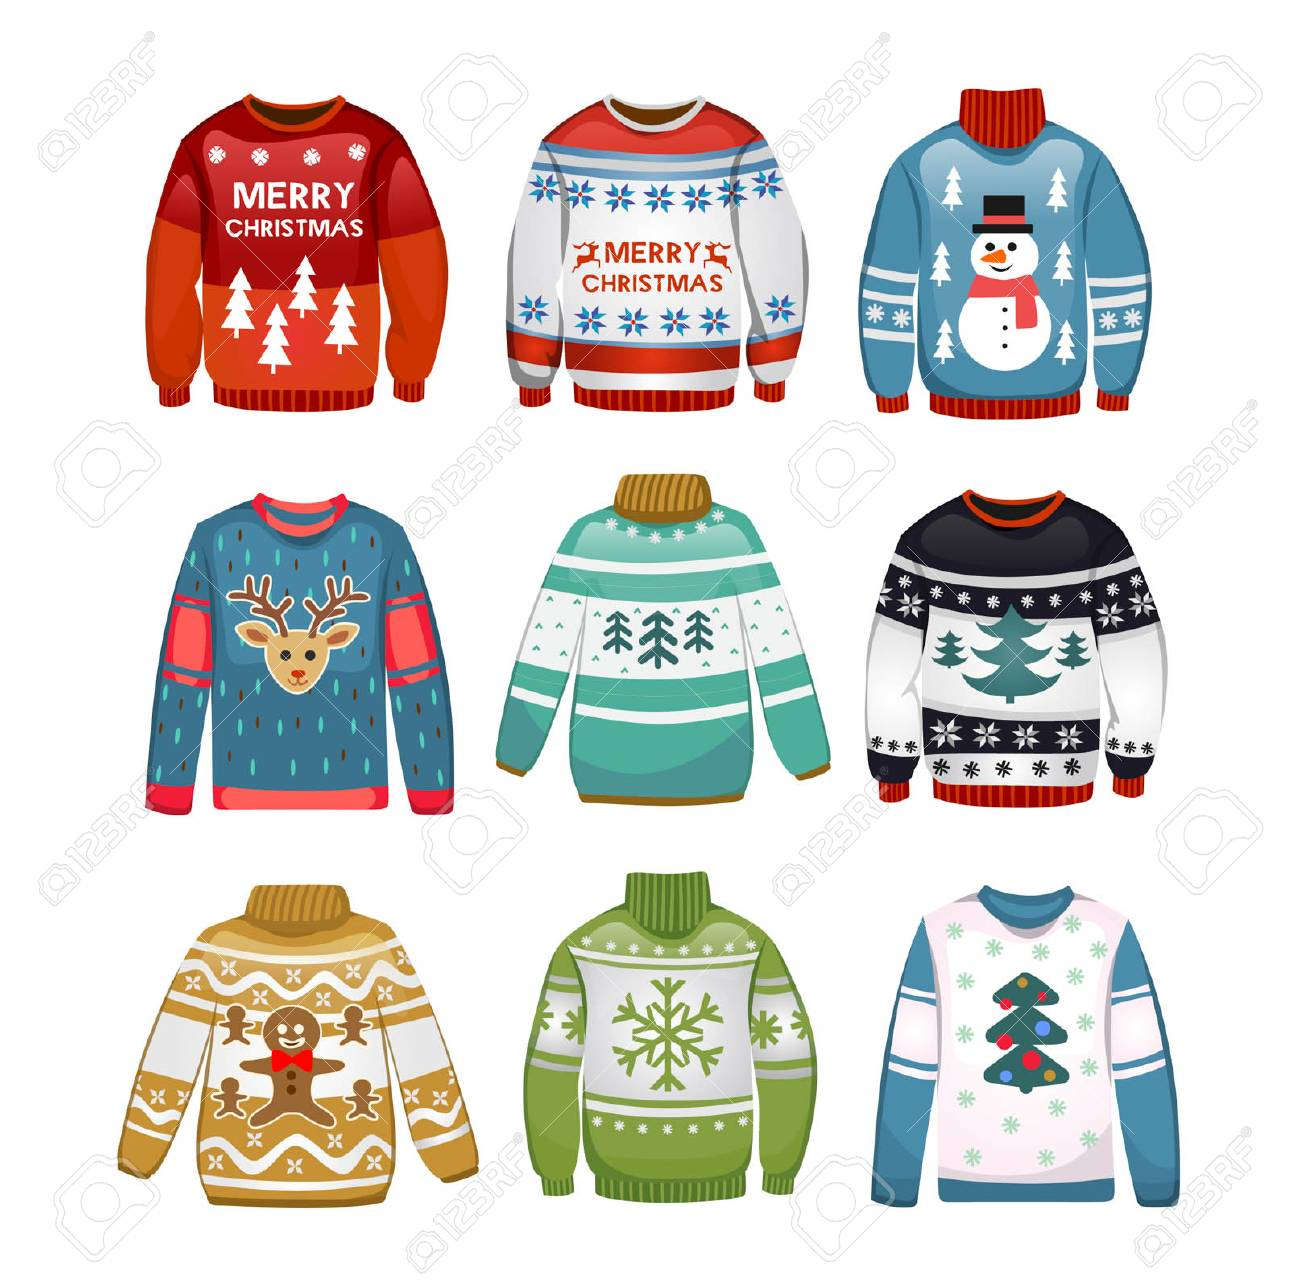 432e8b957b7c Ugly sweaters set. Christmas sweaters isolated on white background. Vector  illustration Stock Vector -